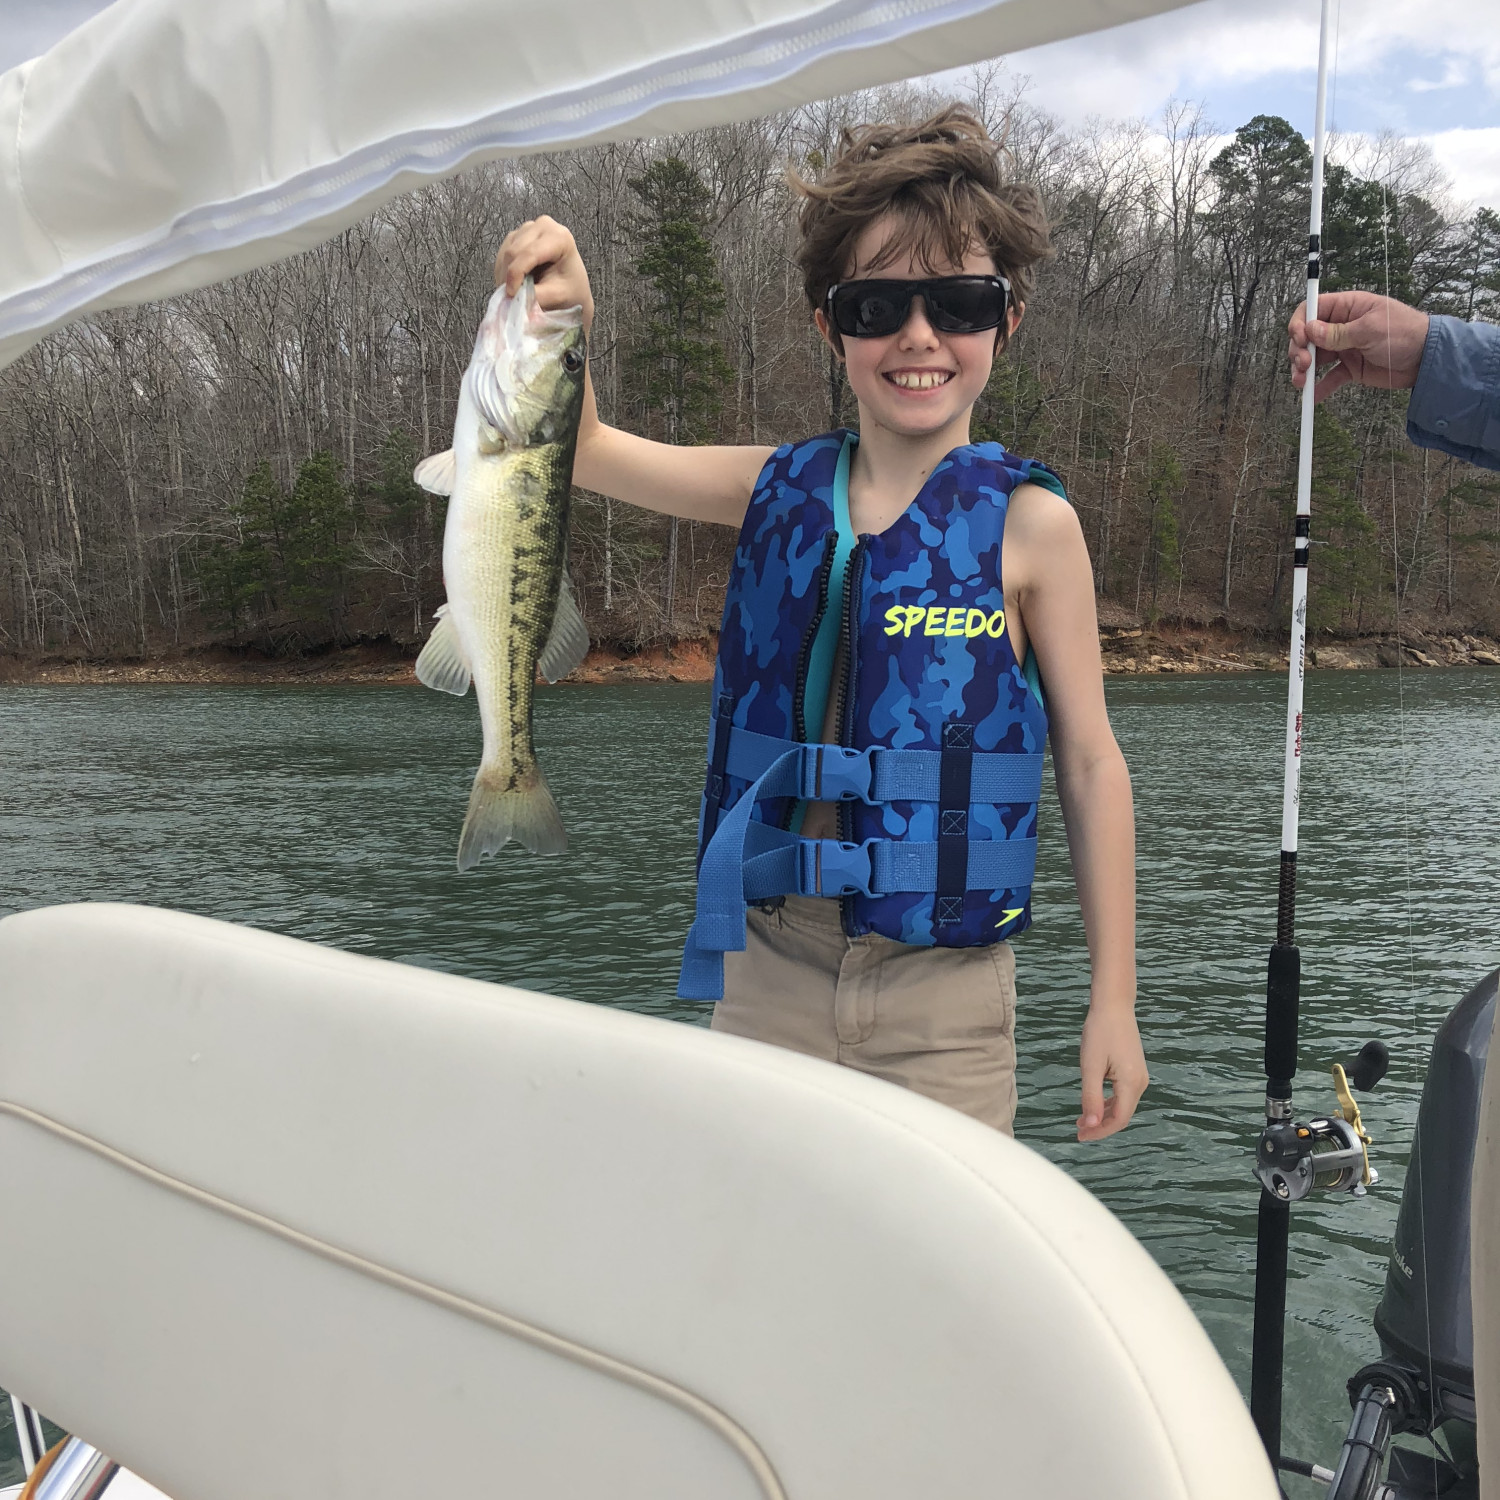 Title: First Bass - On board their Sportsman Island Bay 20 Bay Boat - Location: Lake Hartwell Clemson, SC. Participating in the Photo Contest #SportsmanMarch2018